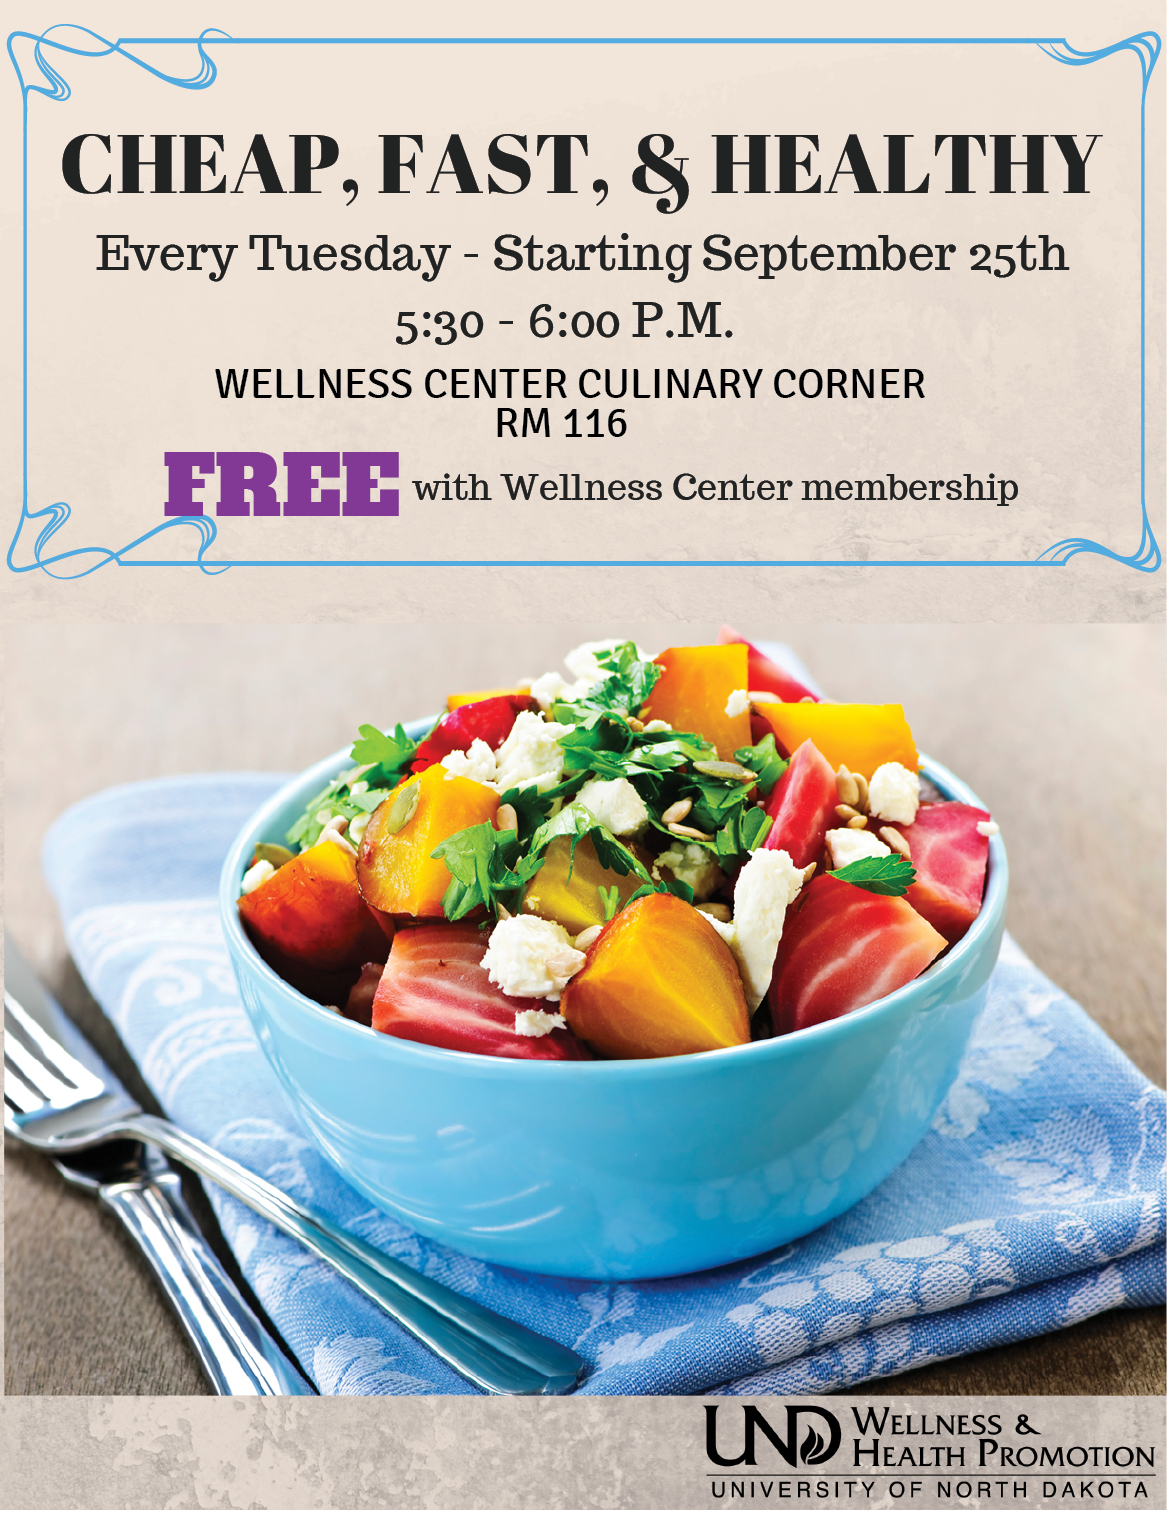 Cheap, fast, & healthy. Every Tuesday-Starting September 25th. 5:30-6pm. Wellness center culinary corner. Rm 116. Free with wellness center membership